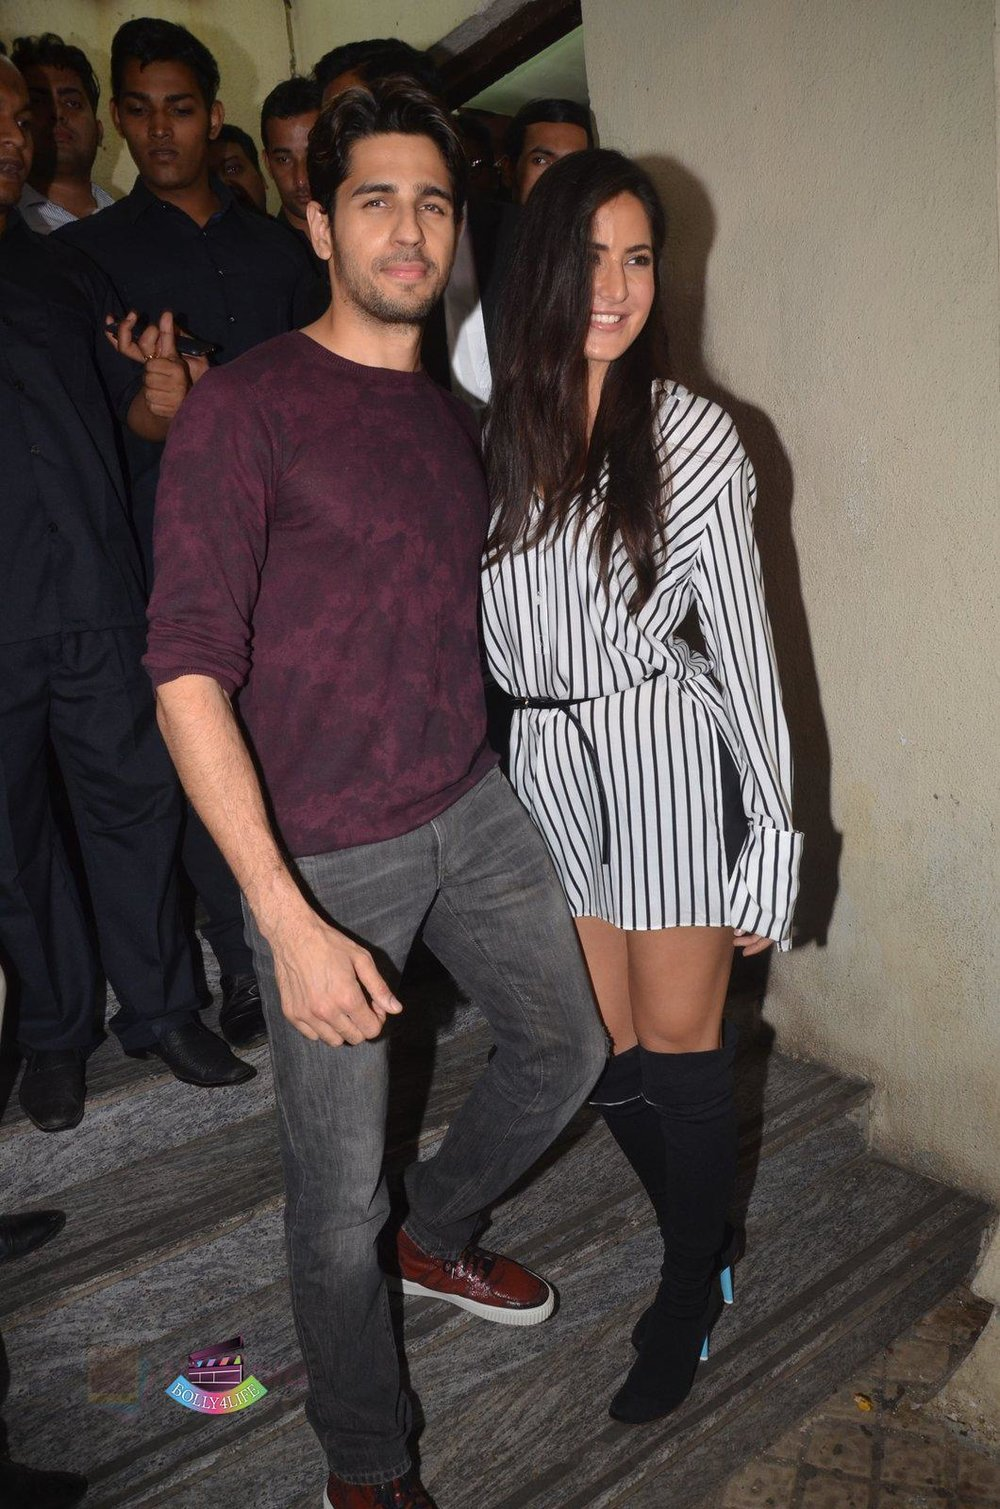 Sidharth-Malhotra-Katrina-Kaif-at-Baar-Baar-Dekho-Screening-on-8th-Sept-2016-119.jpg